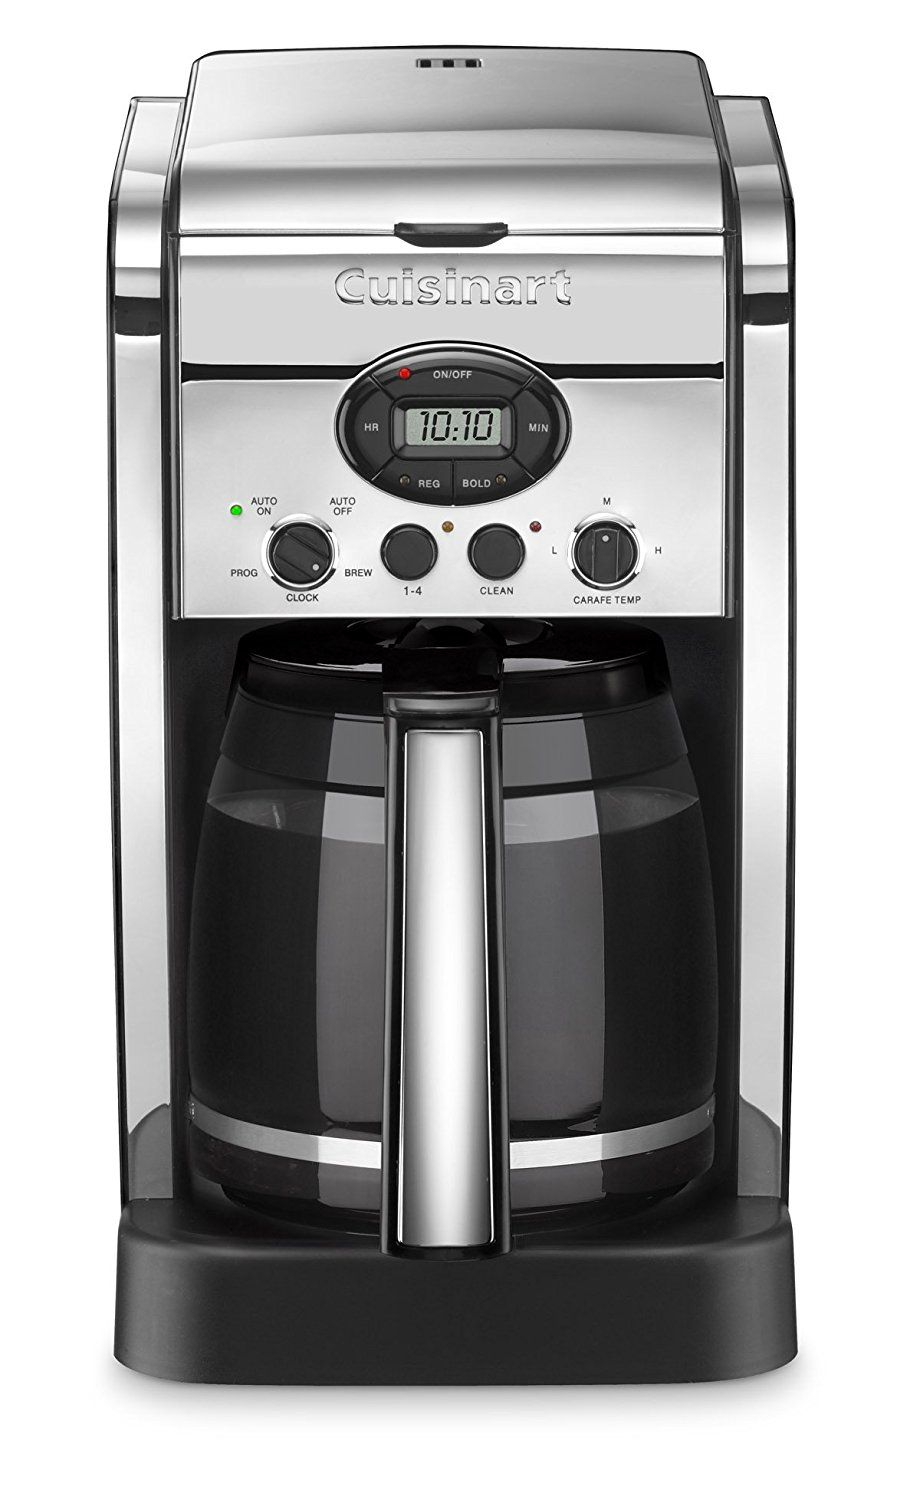 Cuisinart dcc2600chfr 14 cup brew central coffee maker